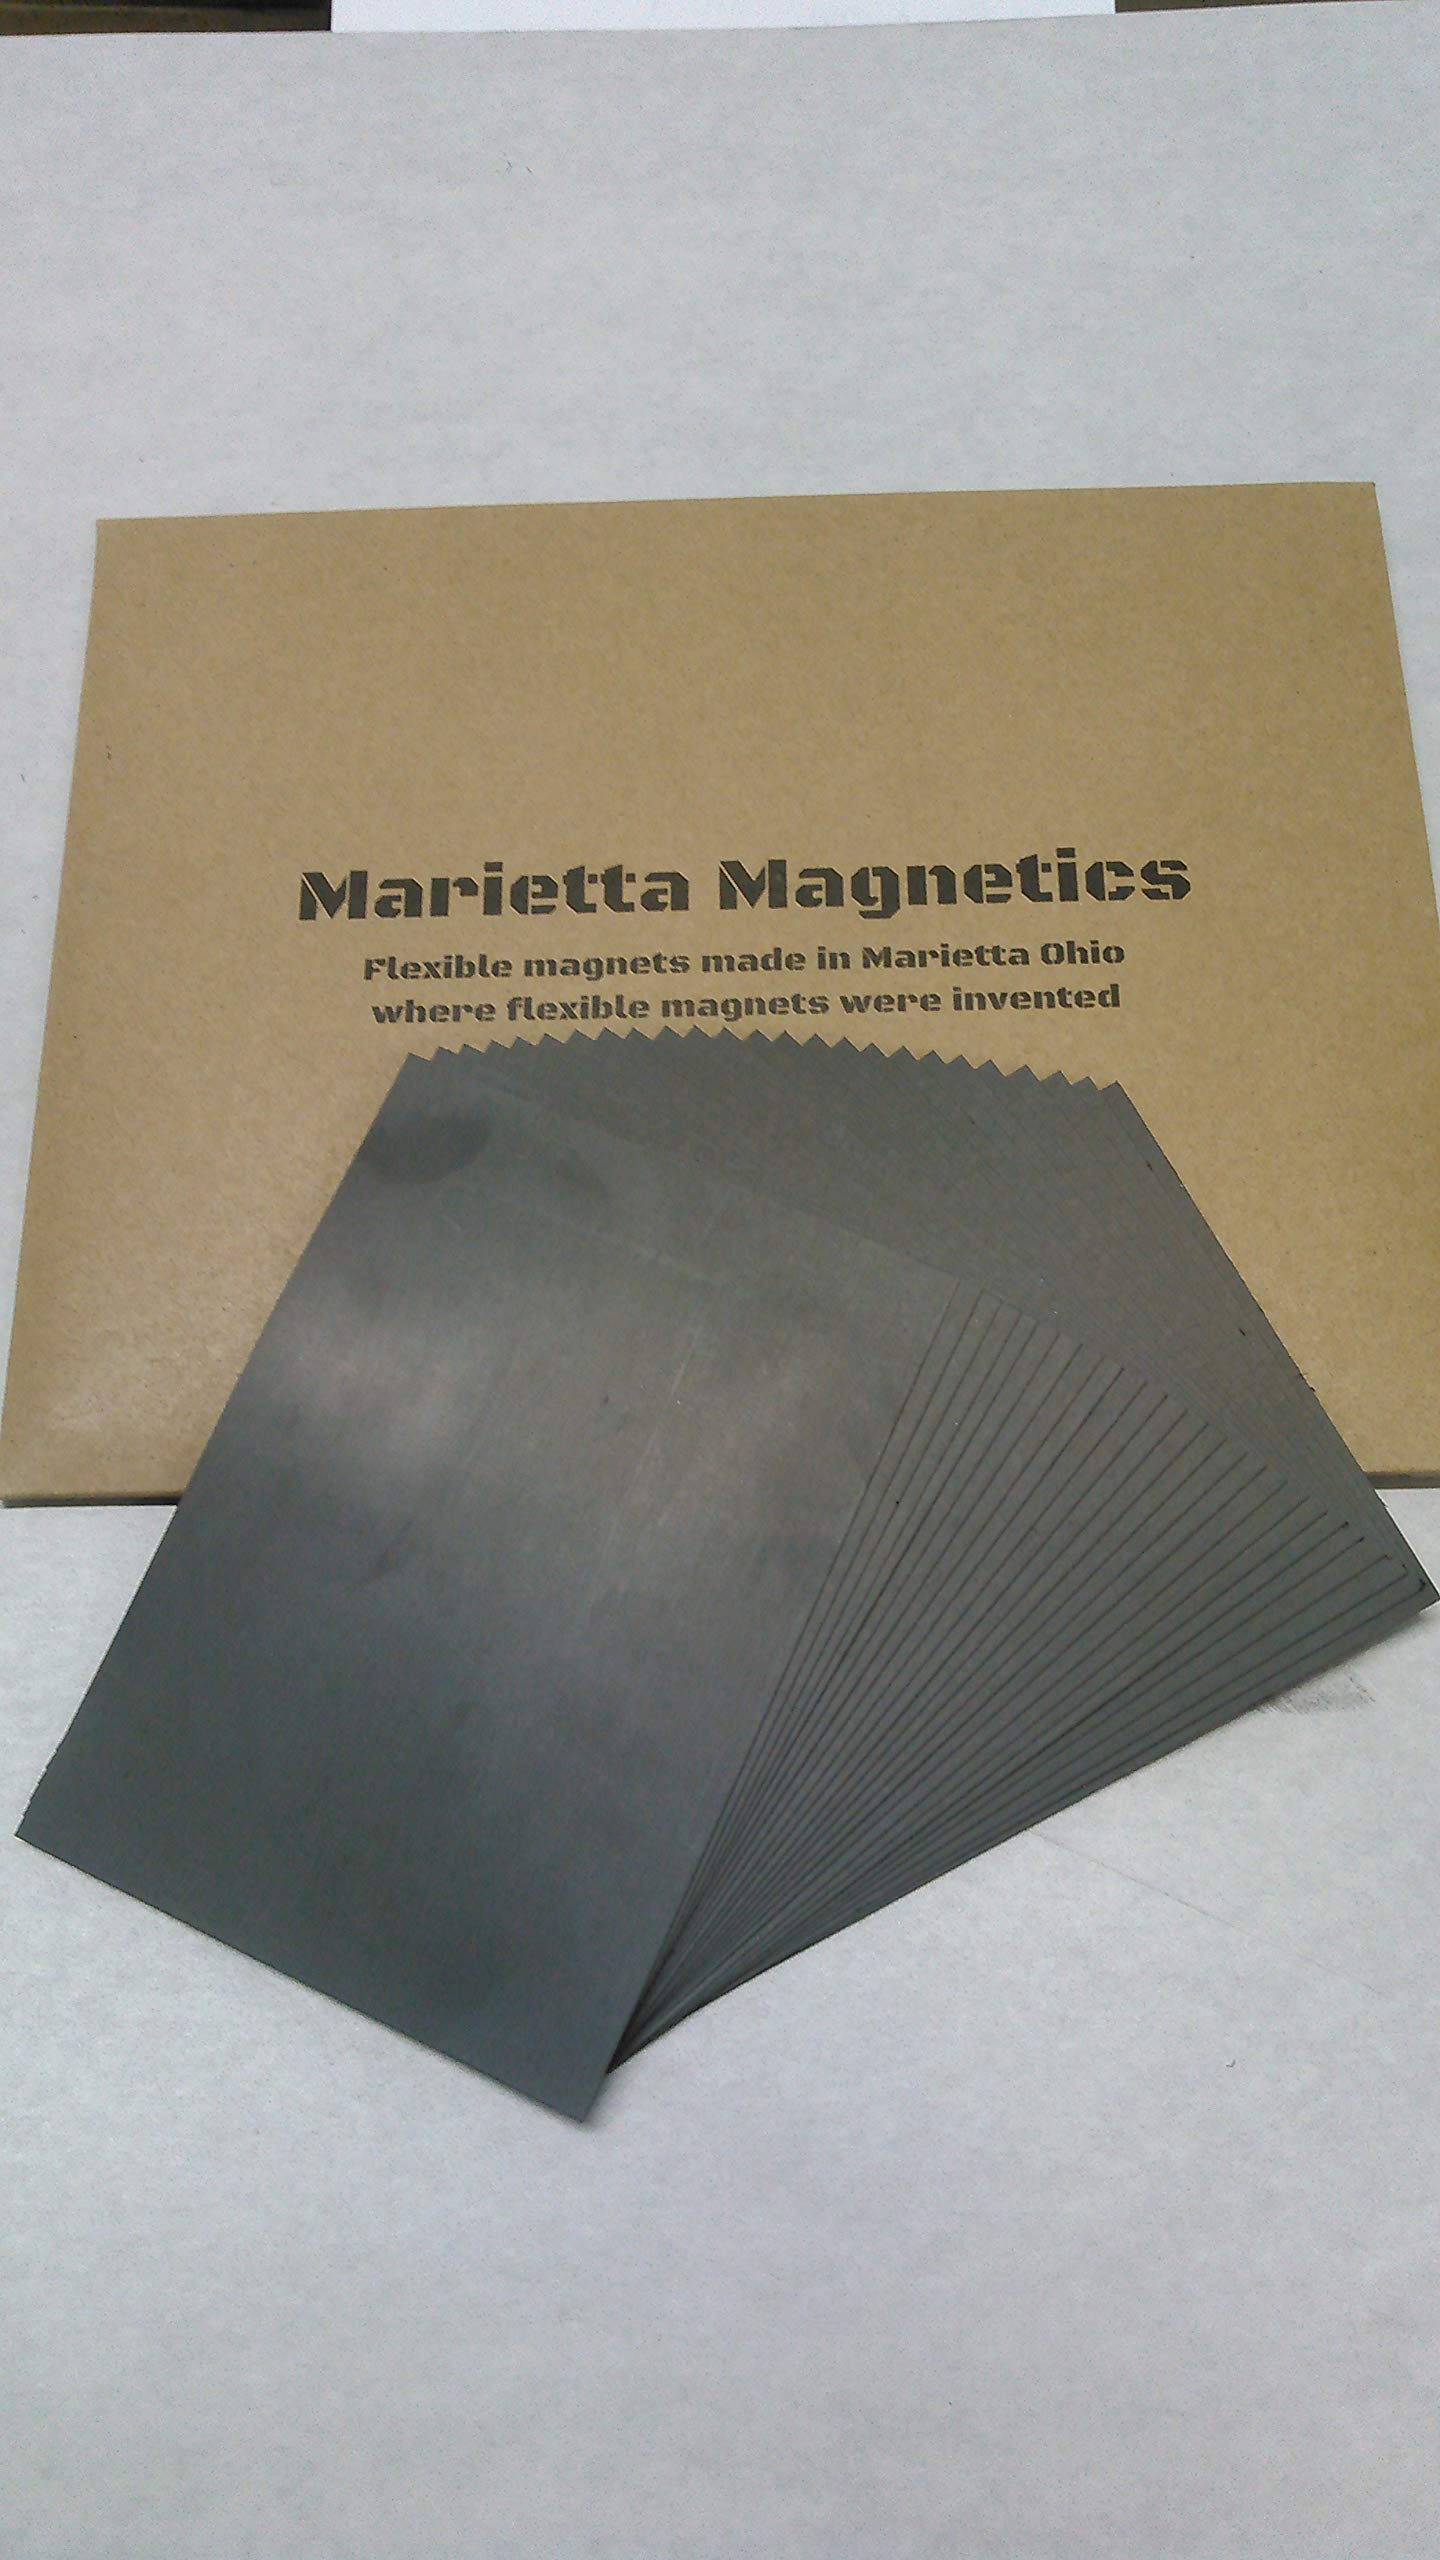 Marietta Magnetics 8.5 x 11 Plain Magnet Sheets 30 mil - 25 Pack by Marietta Magnetics